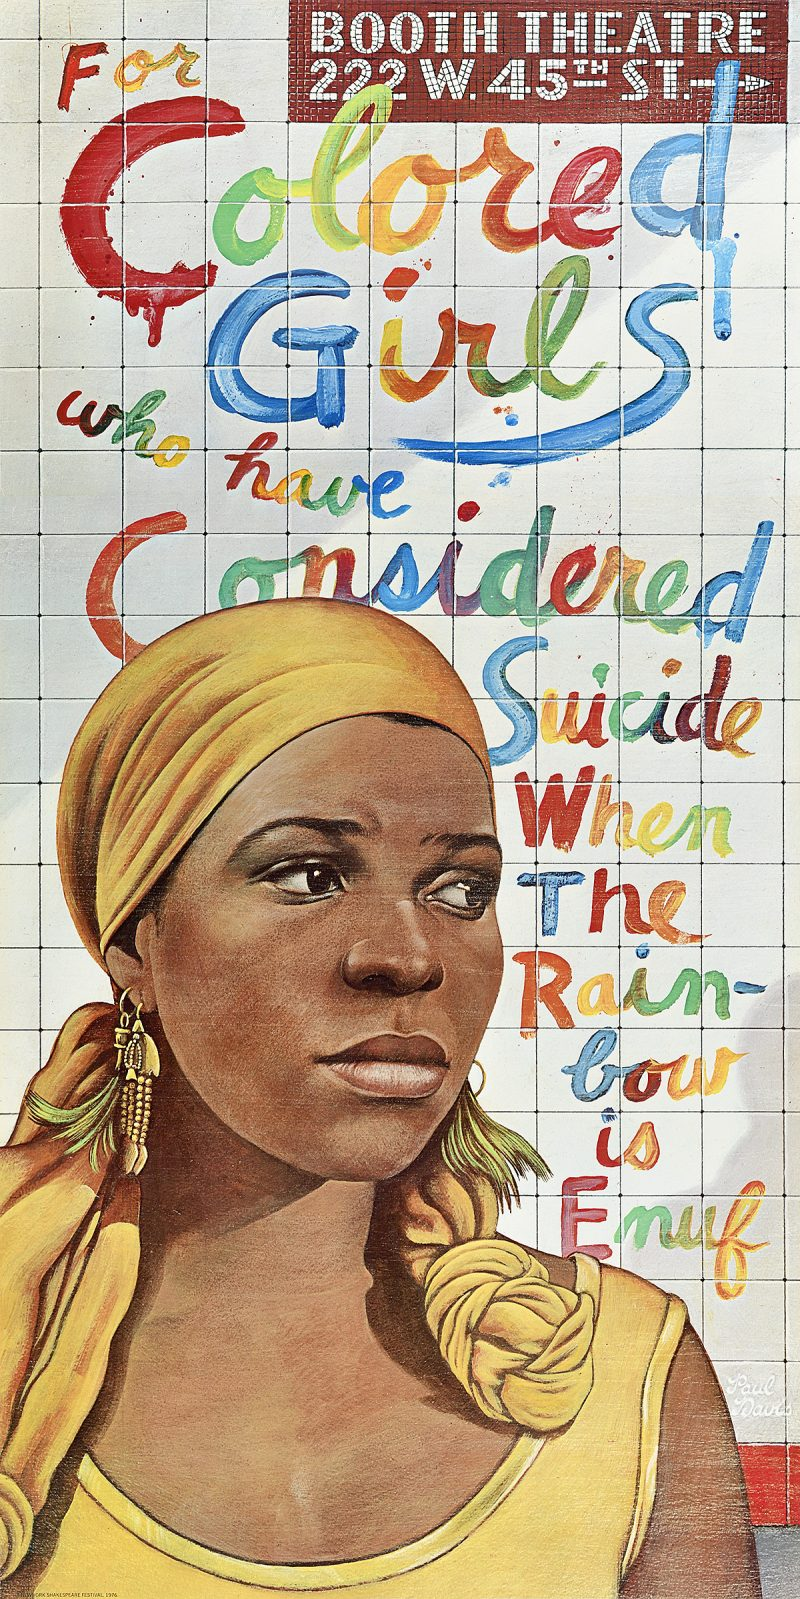 illustrational poster of a black woman staring off to the right in front of a tiled subway wall